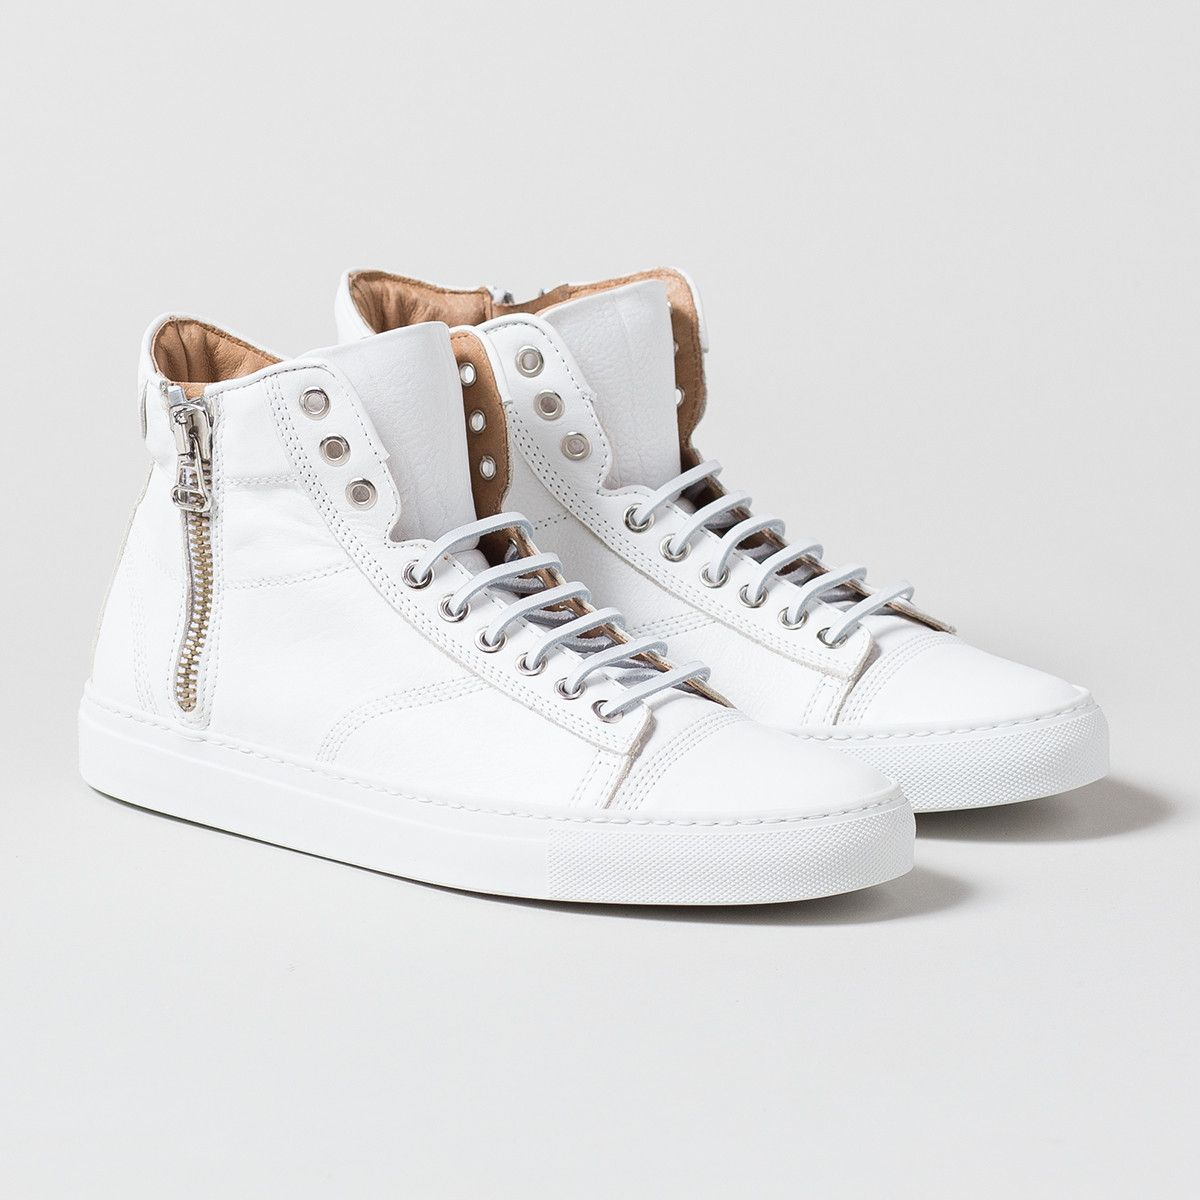 e3f5b85155 Wings and Horns Leather Hi Top Sneaker White | Apartment Number 9 ...